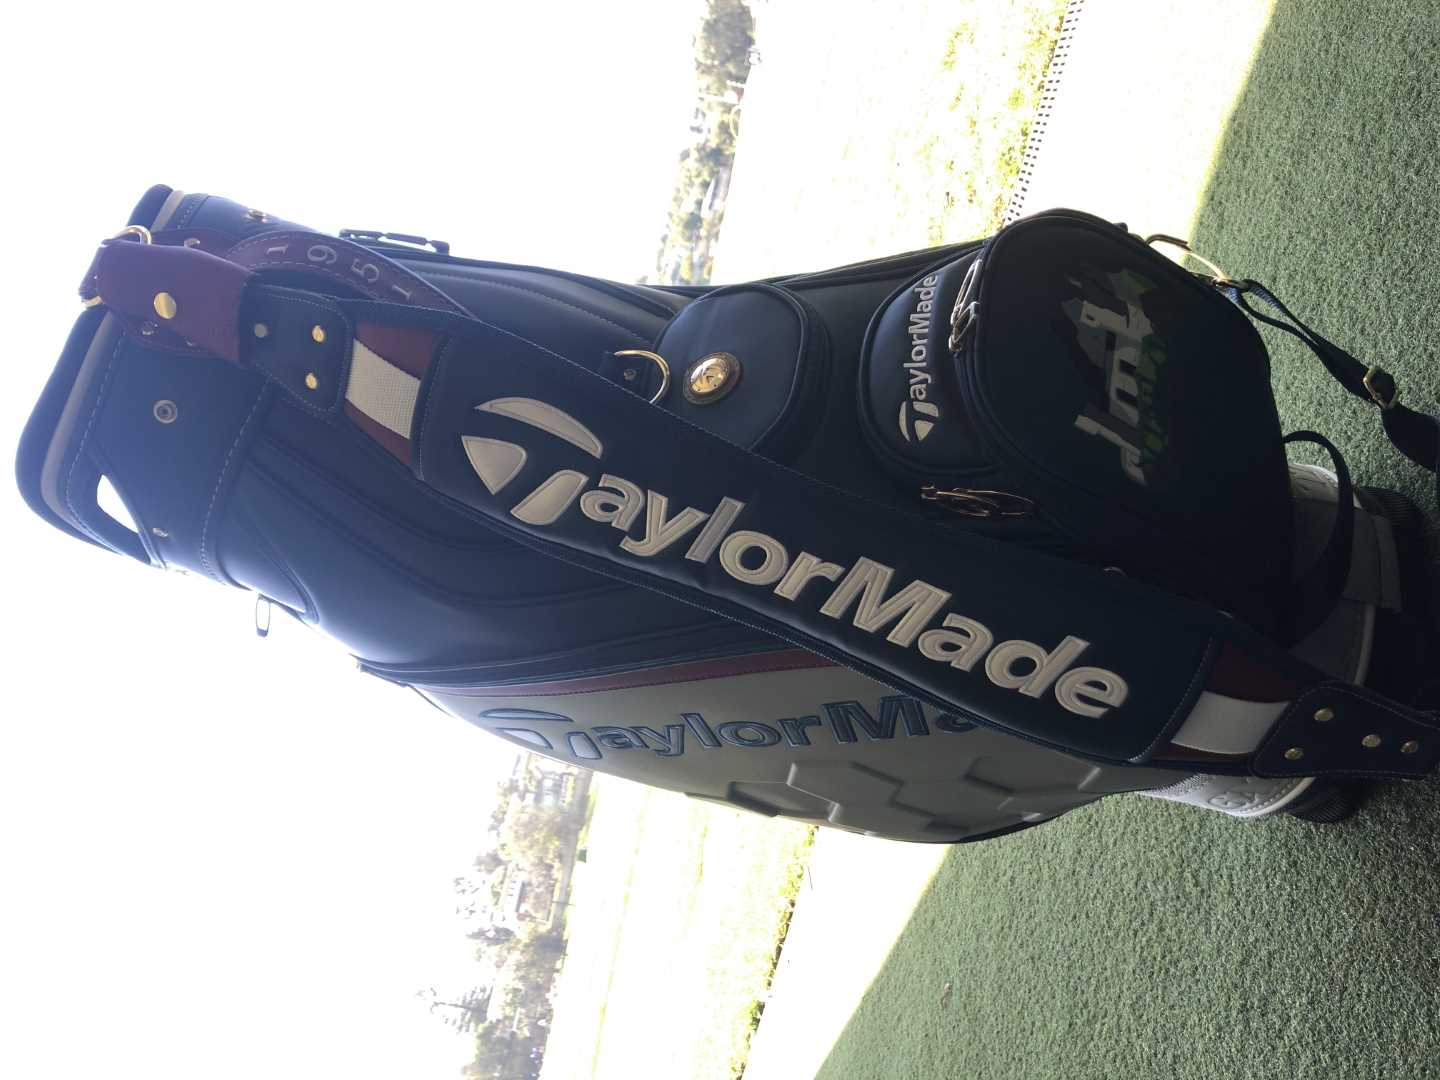 Taylormade Open CHampionship Bag